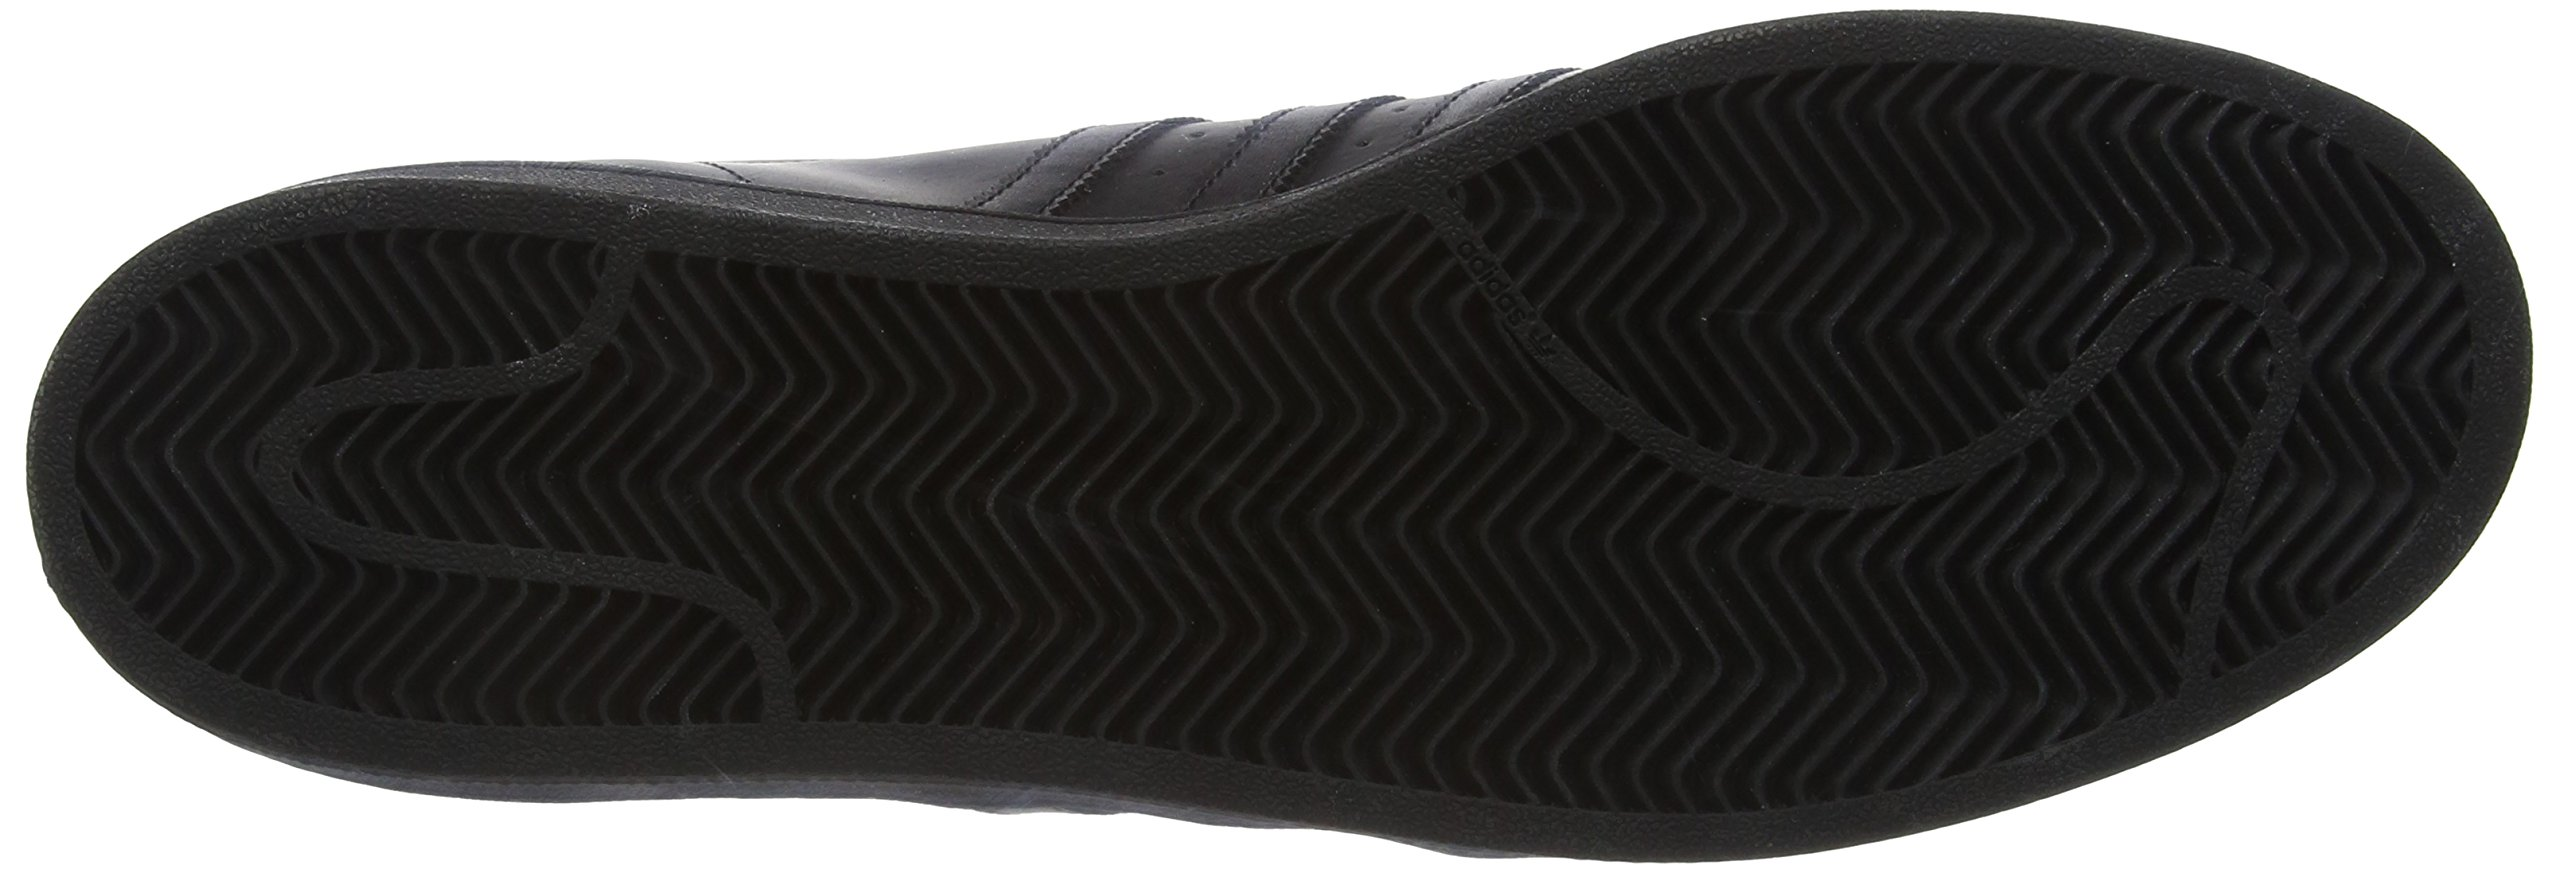 Adidas Originals Superstar Foundation Scarpe da Ginnastica Unisex - Adulto 3 spesavip